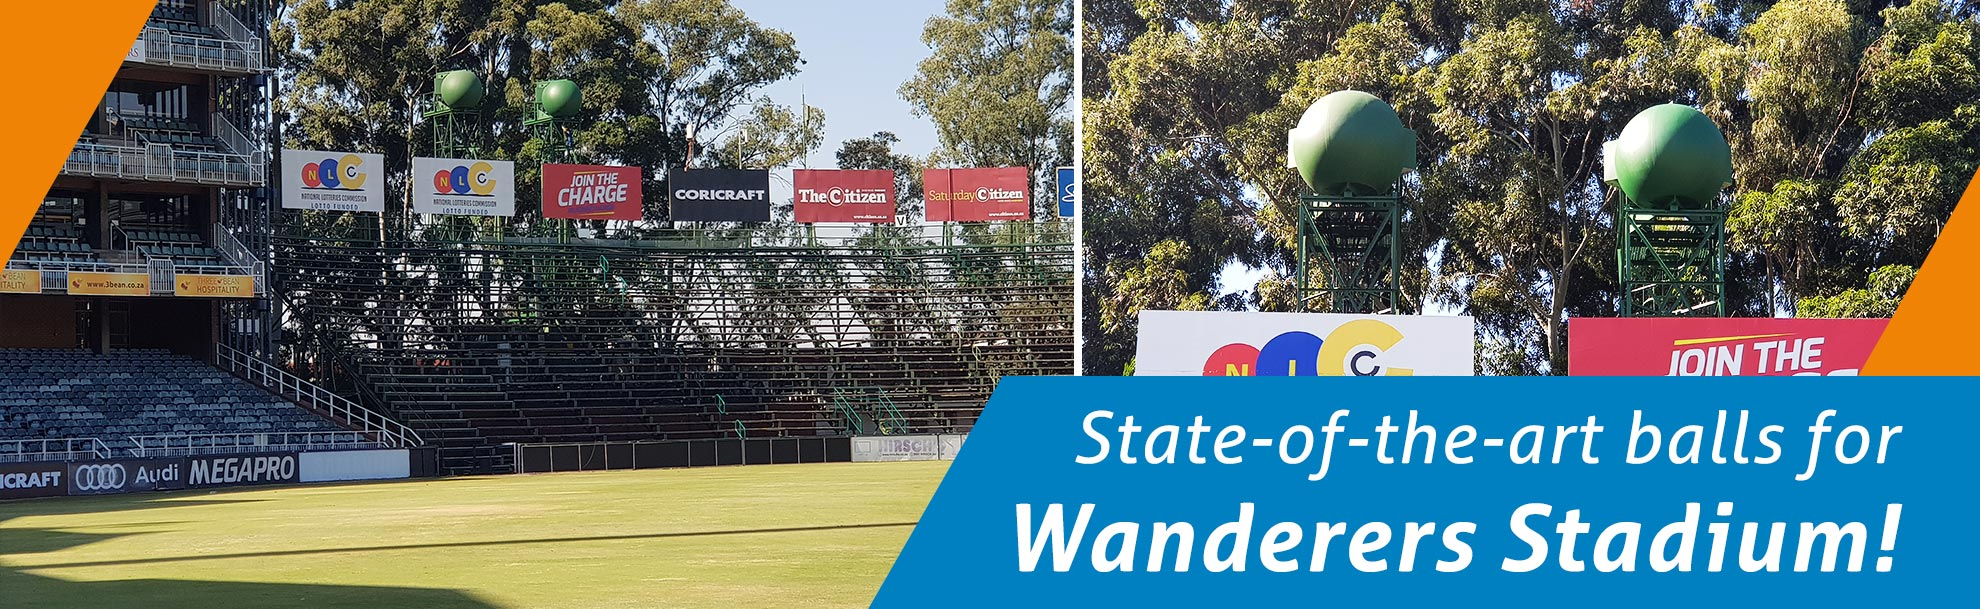 State-of-the-art balls for Wanderers Stadium!